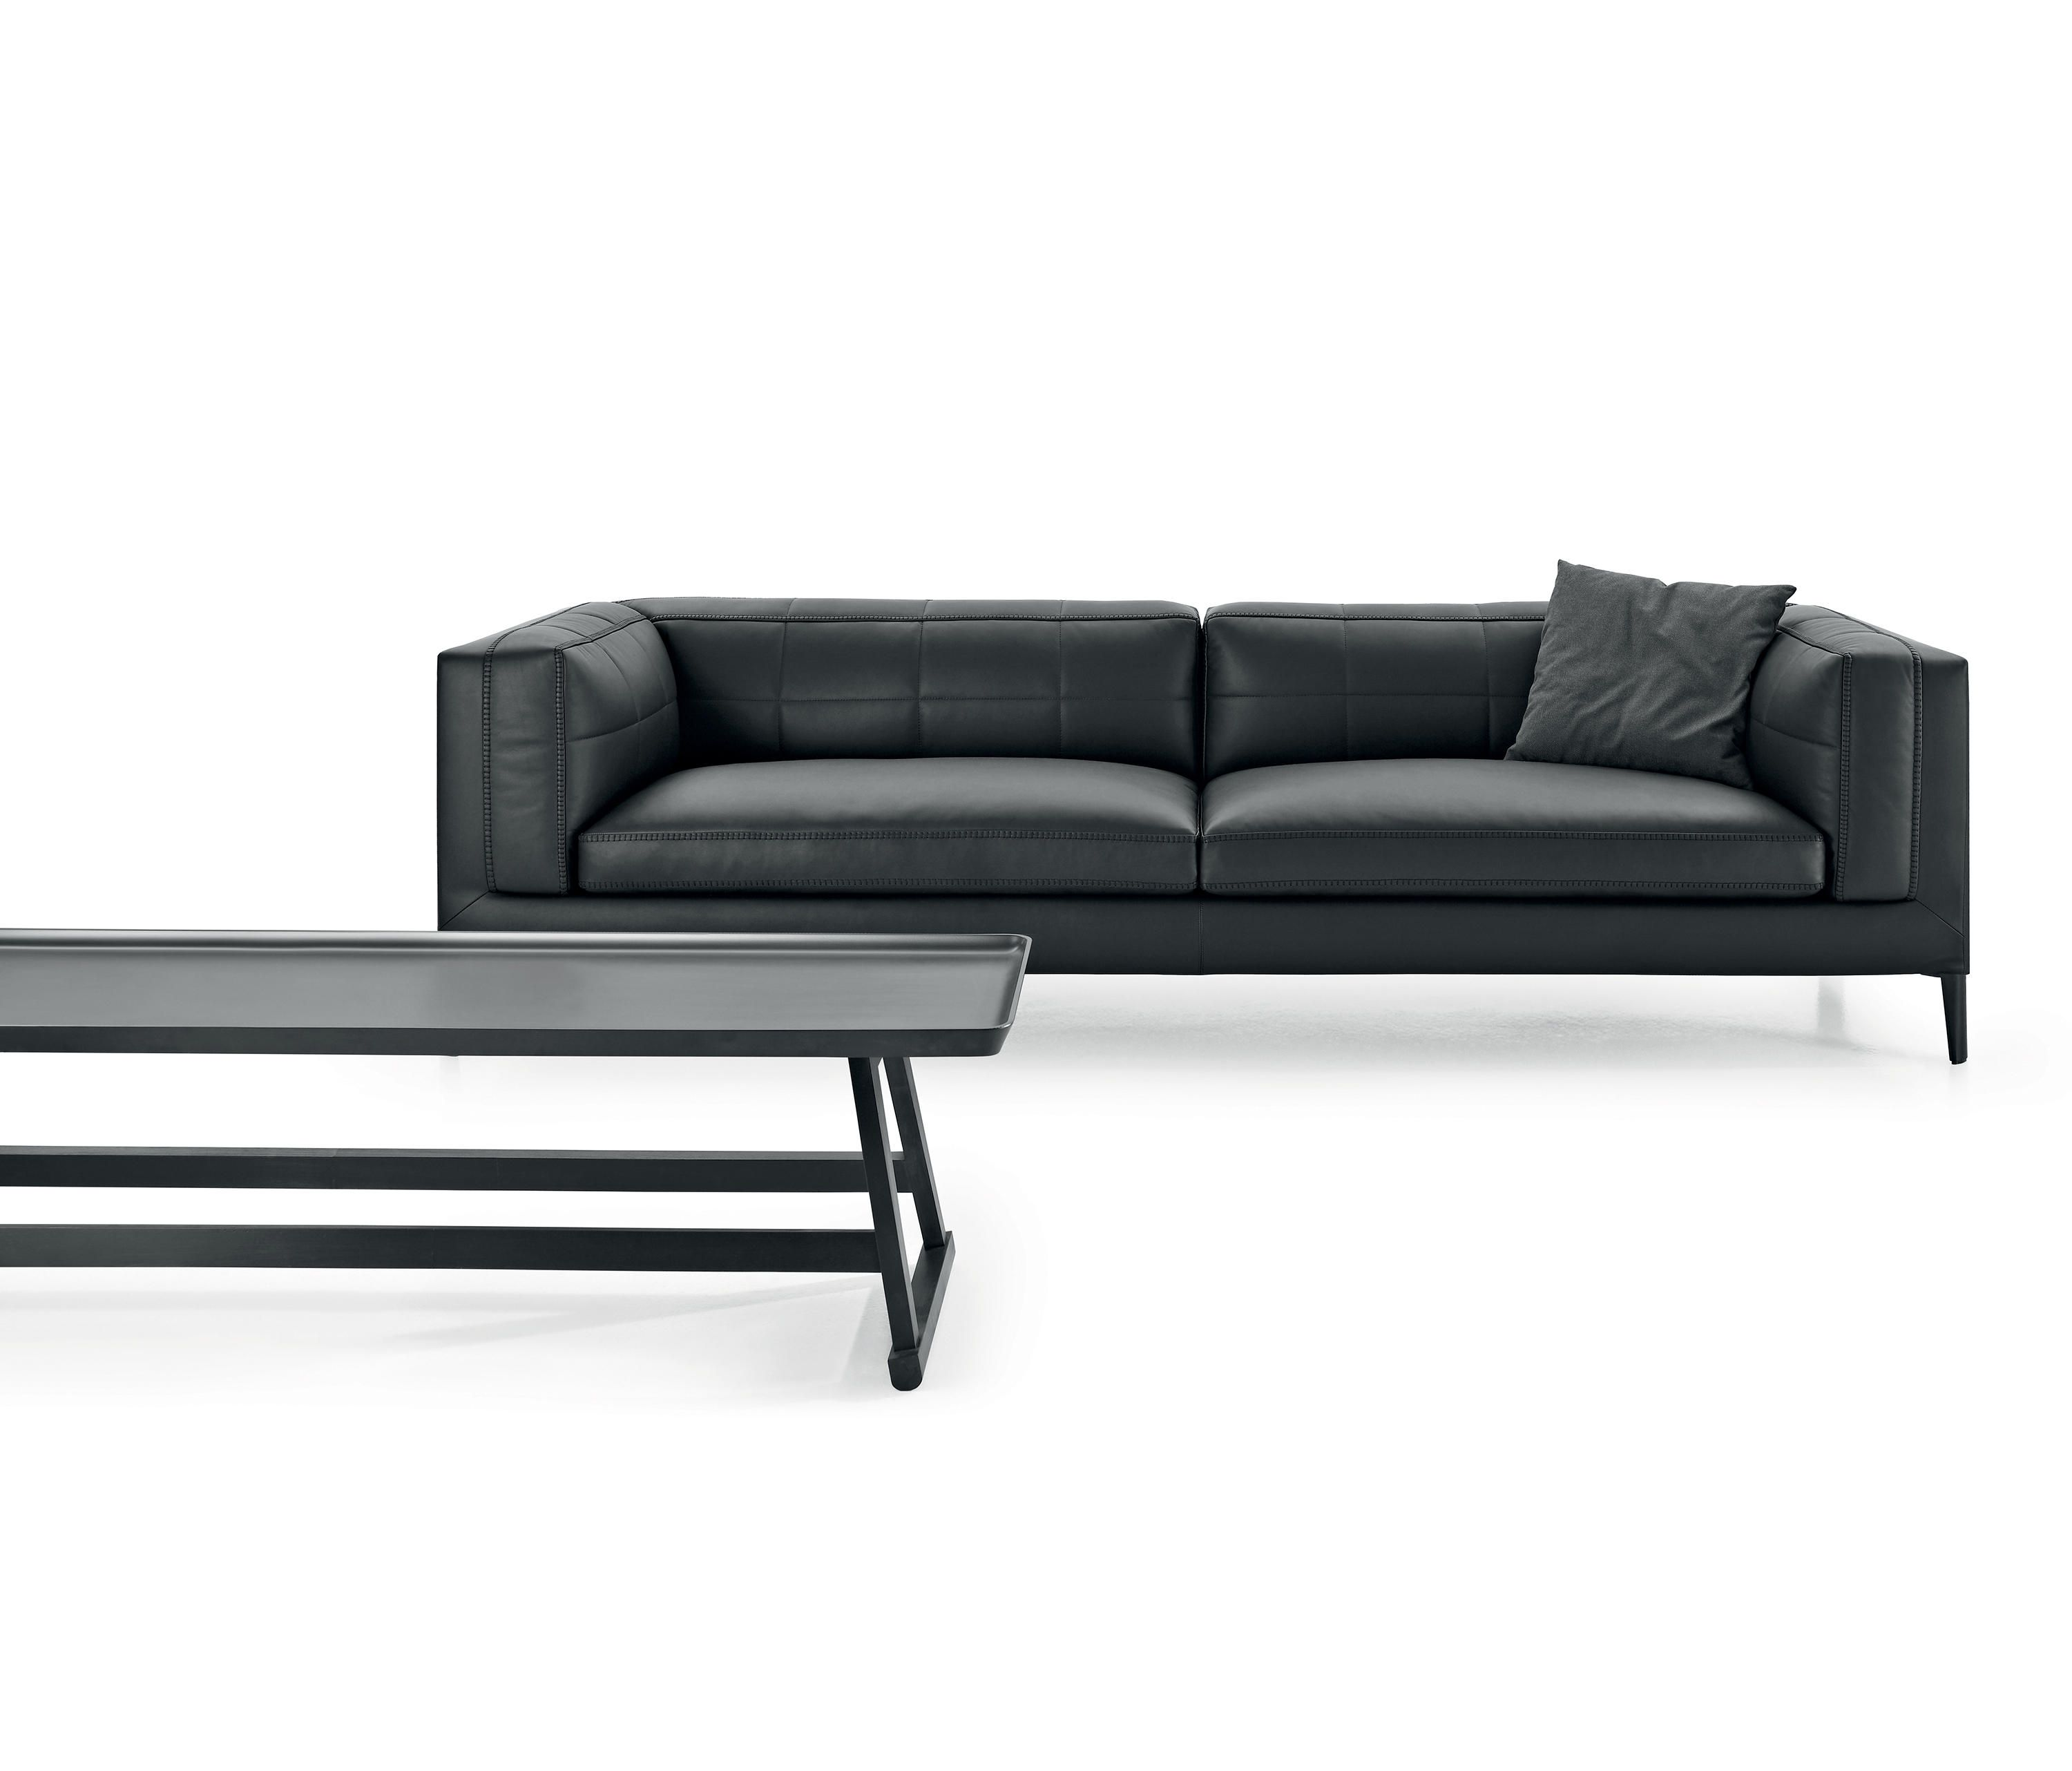 Search All Products, Brands And Retailers Of Sofas Discover Prices,